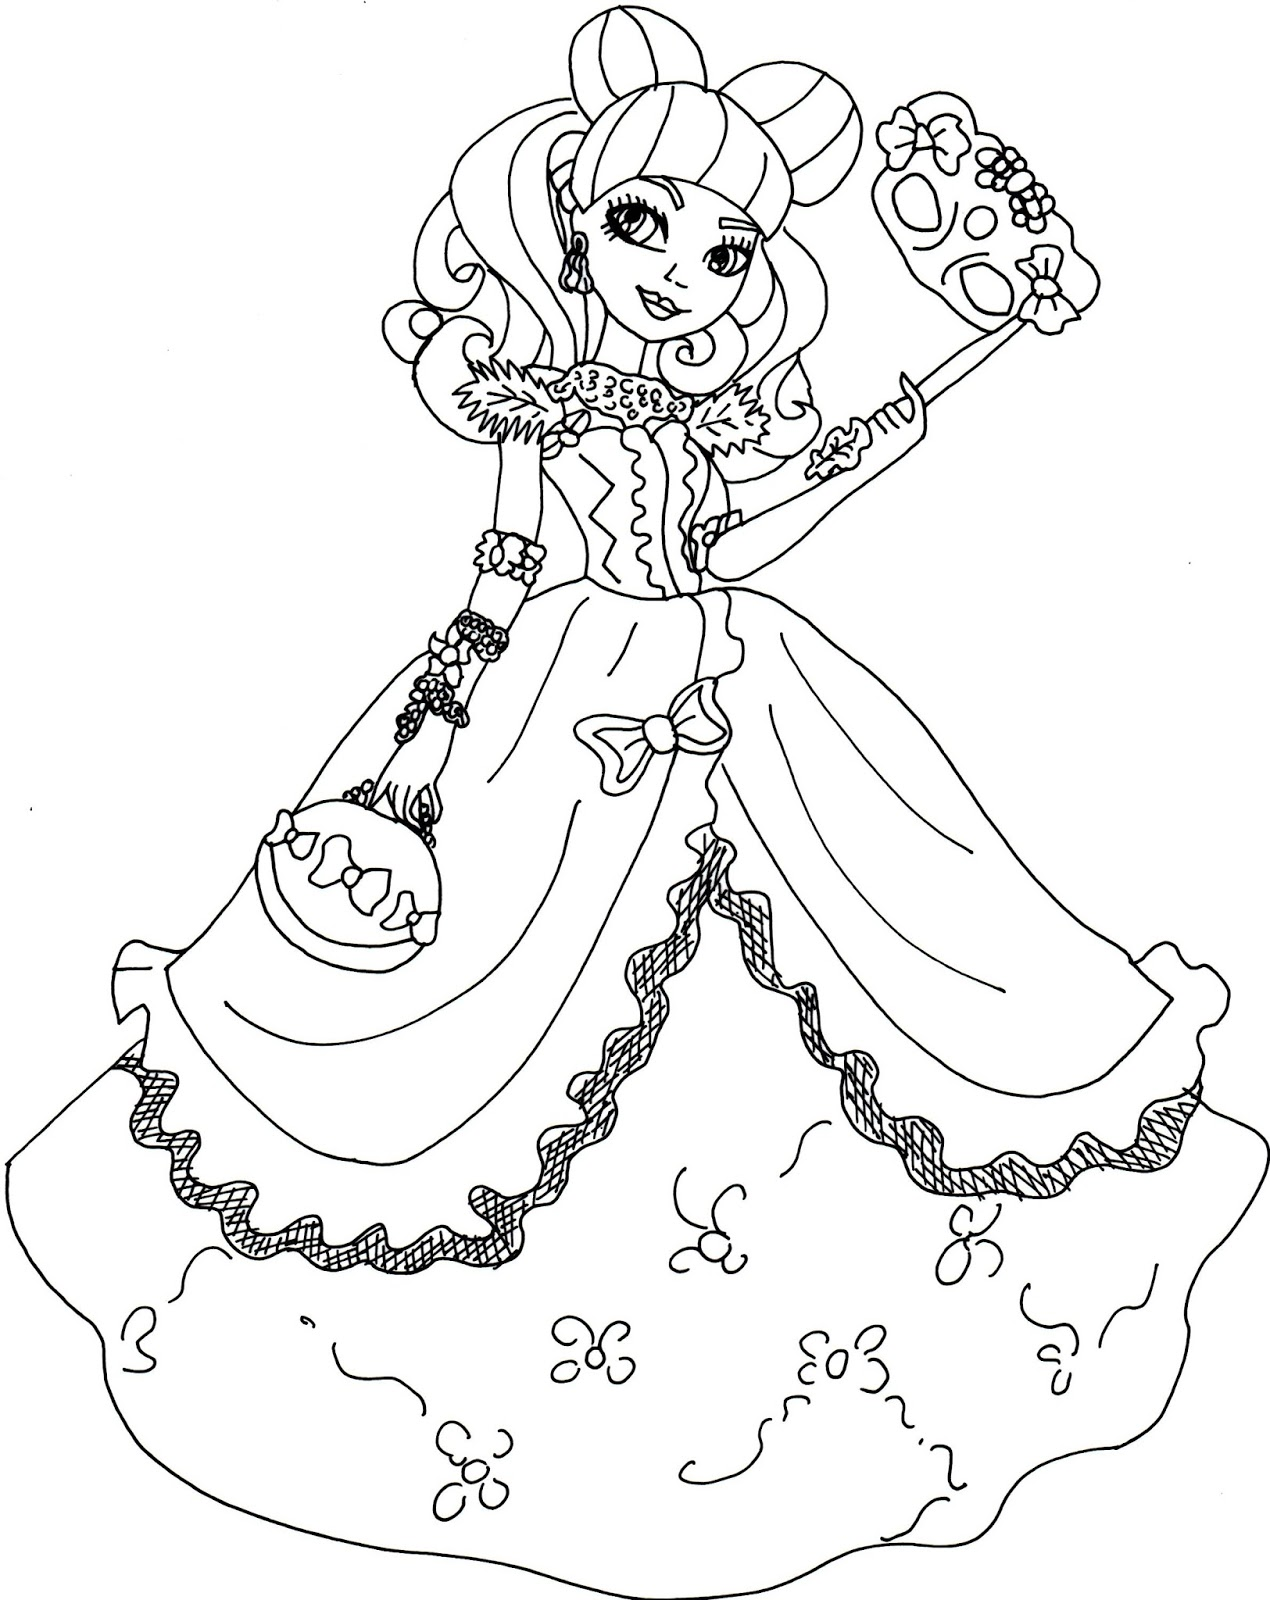 The Best Free Blondie Coloring Page Images Download From 9 Free